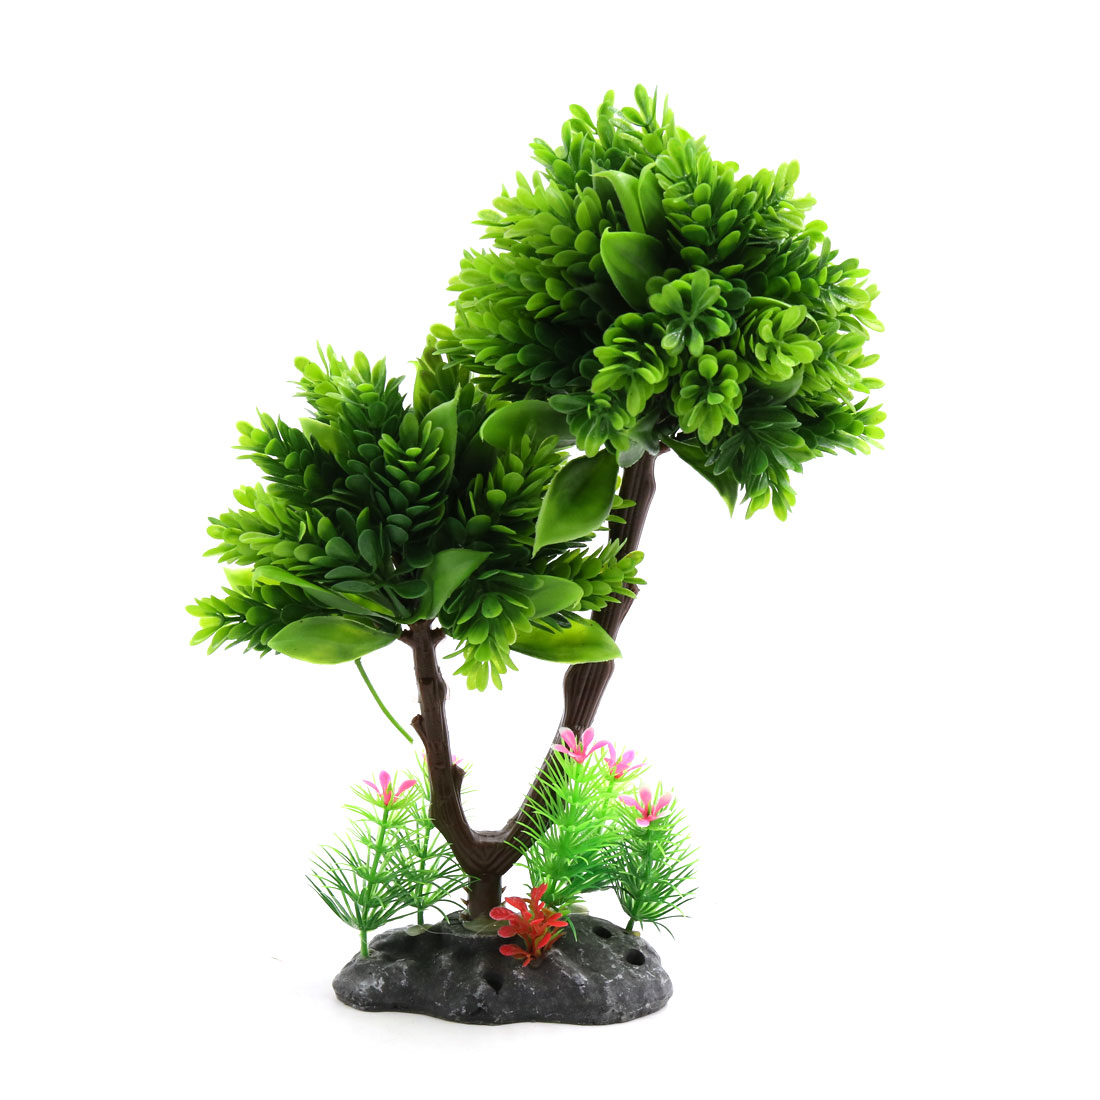 Green Plastic Decor Tree Plant Ornament for Aquarium Fish Tank w Ceramic Base